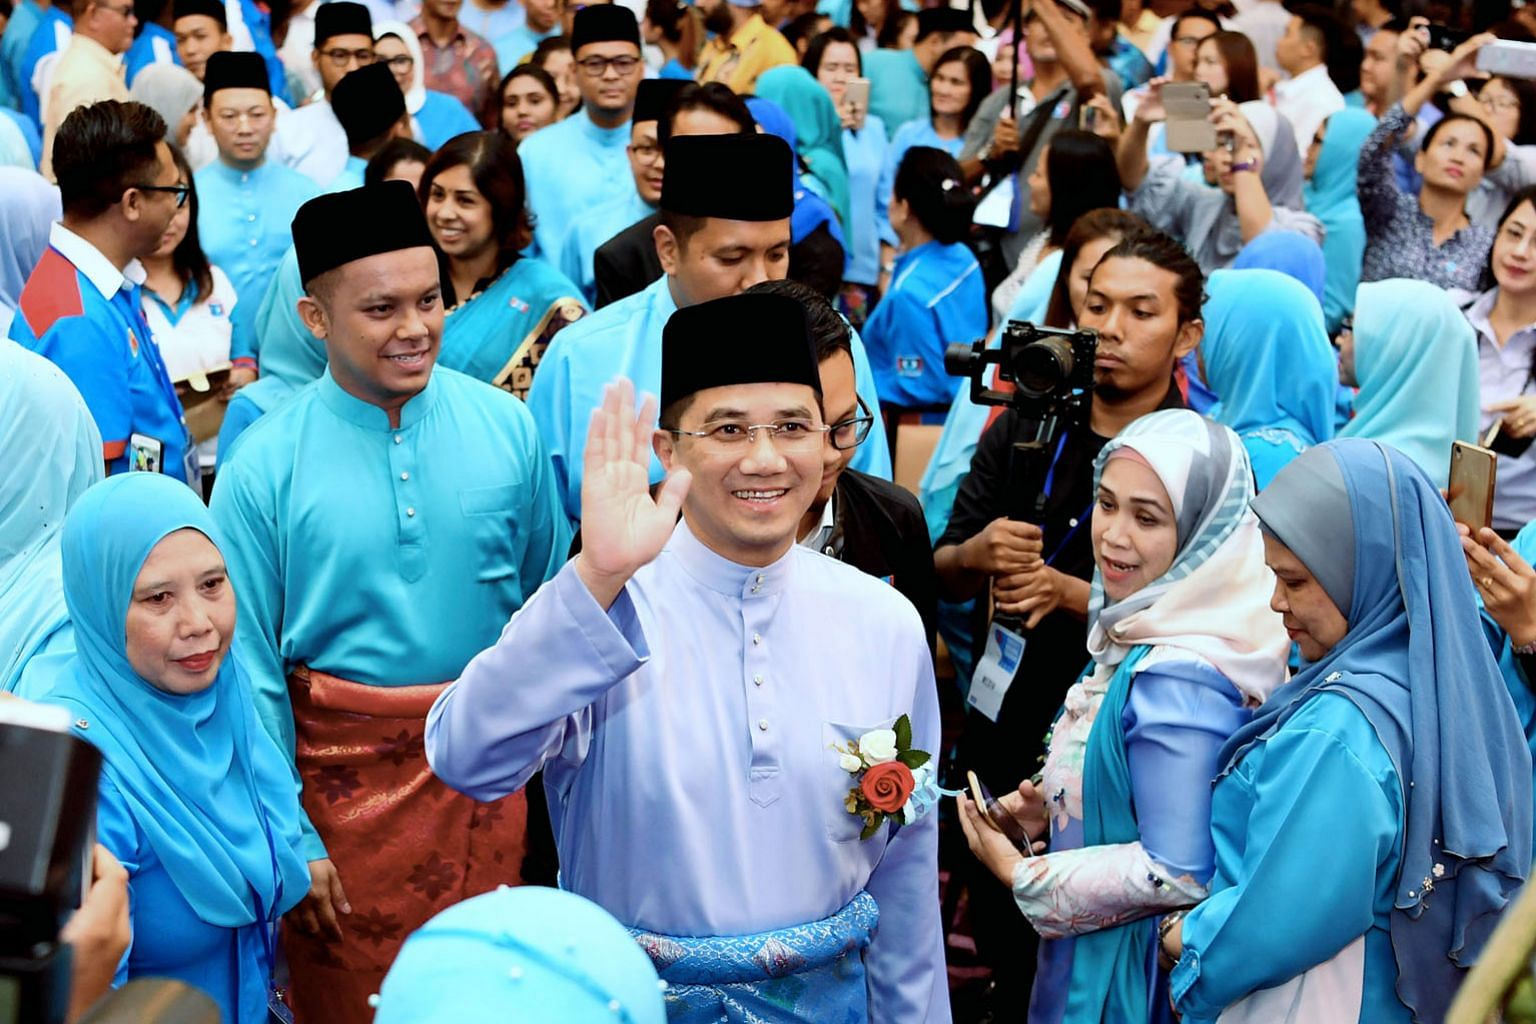 """Mr Azmin Ali (waving) is now poised as a future premier in his own right. One observer said: """"Azmin's people are now in key positions and if Anwar (Ibrahim) does not work with them, they may slow, or add uncertainty, to the latter's ascension."""""""